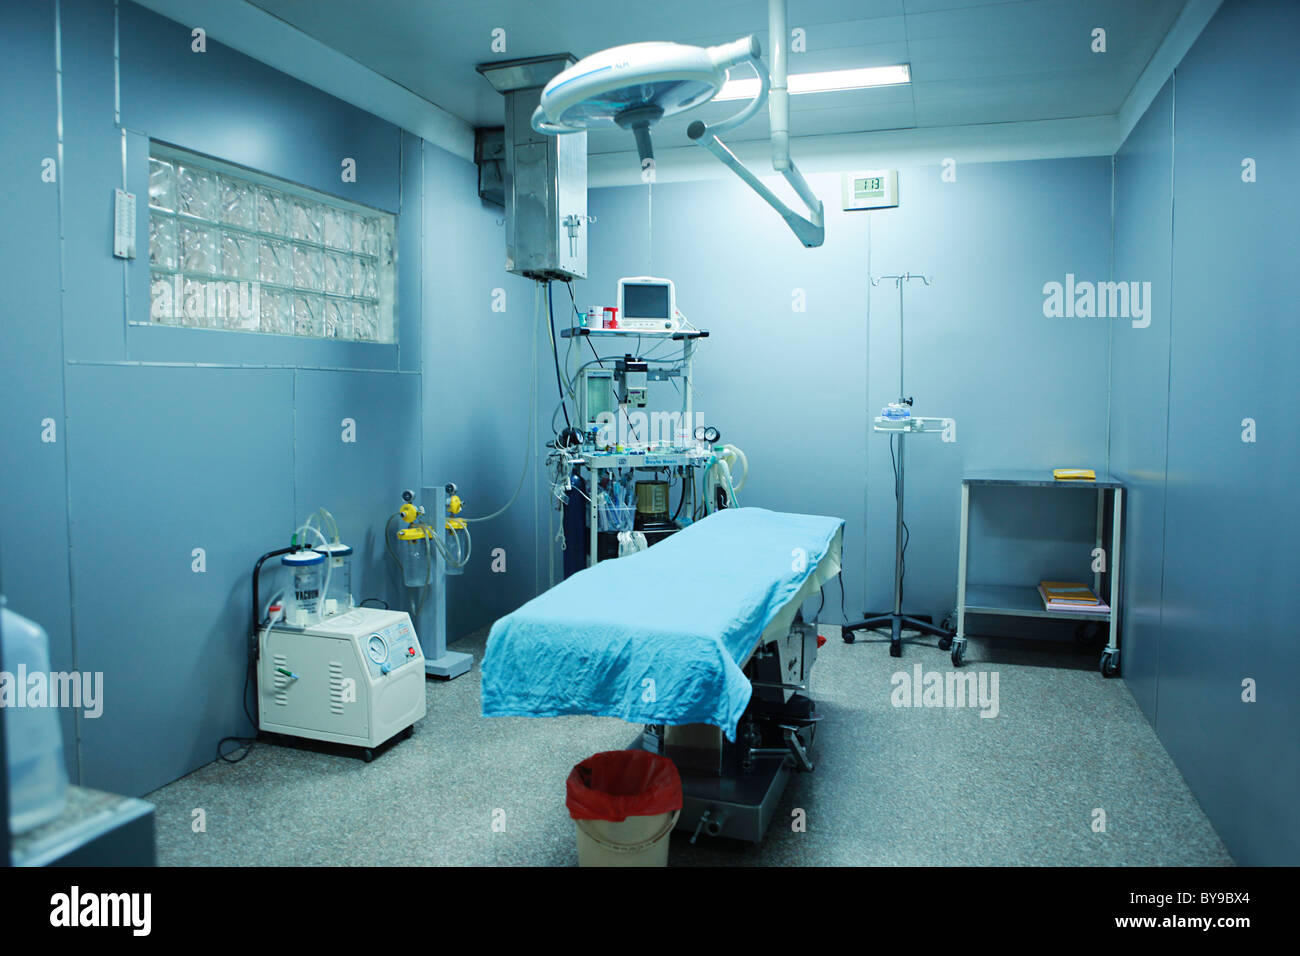 Operating table - Stock Image